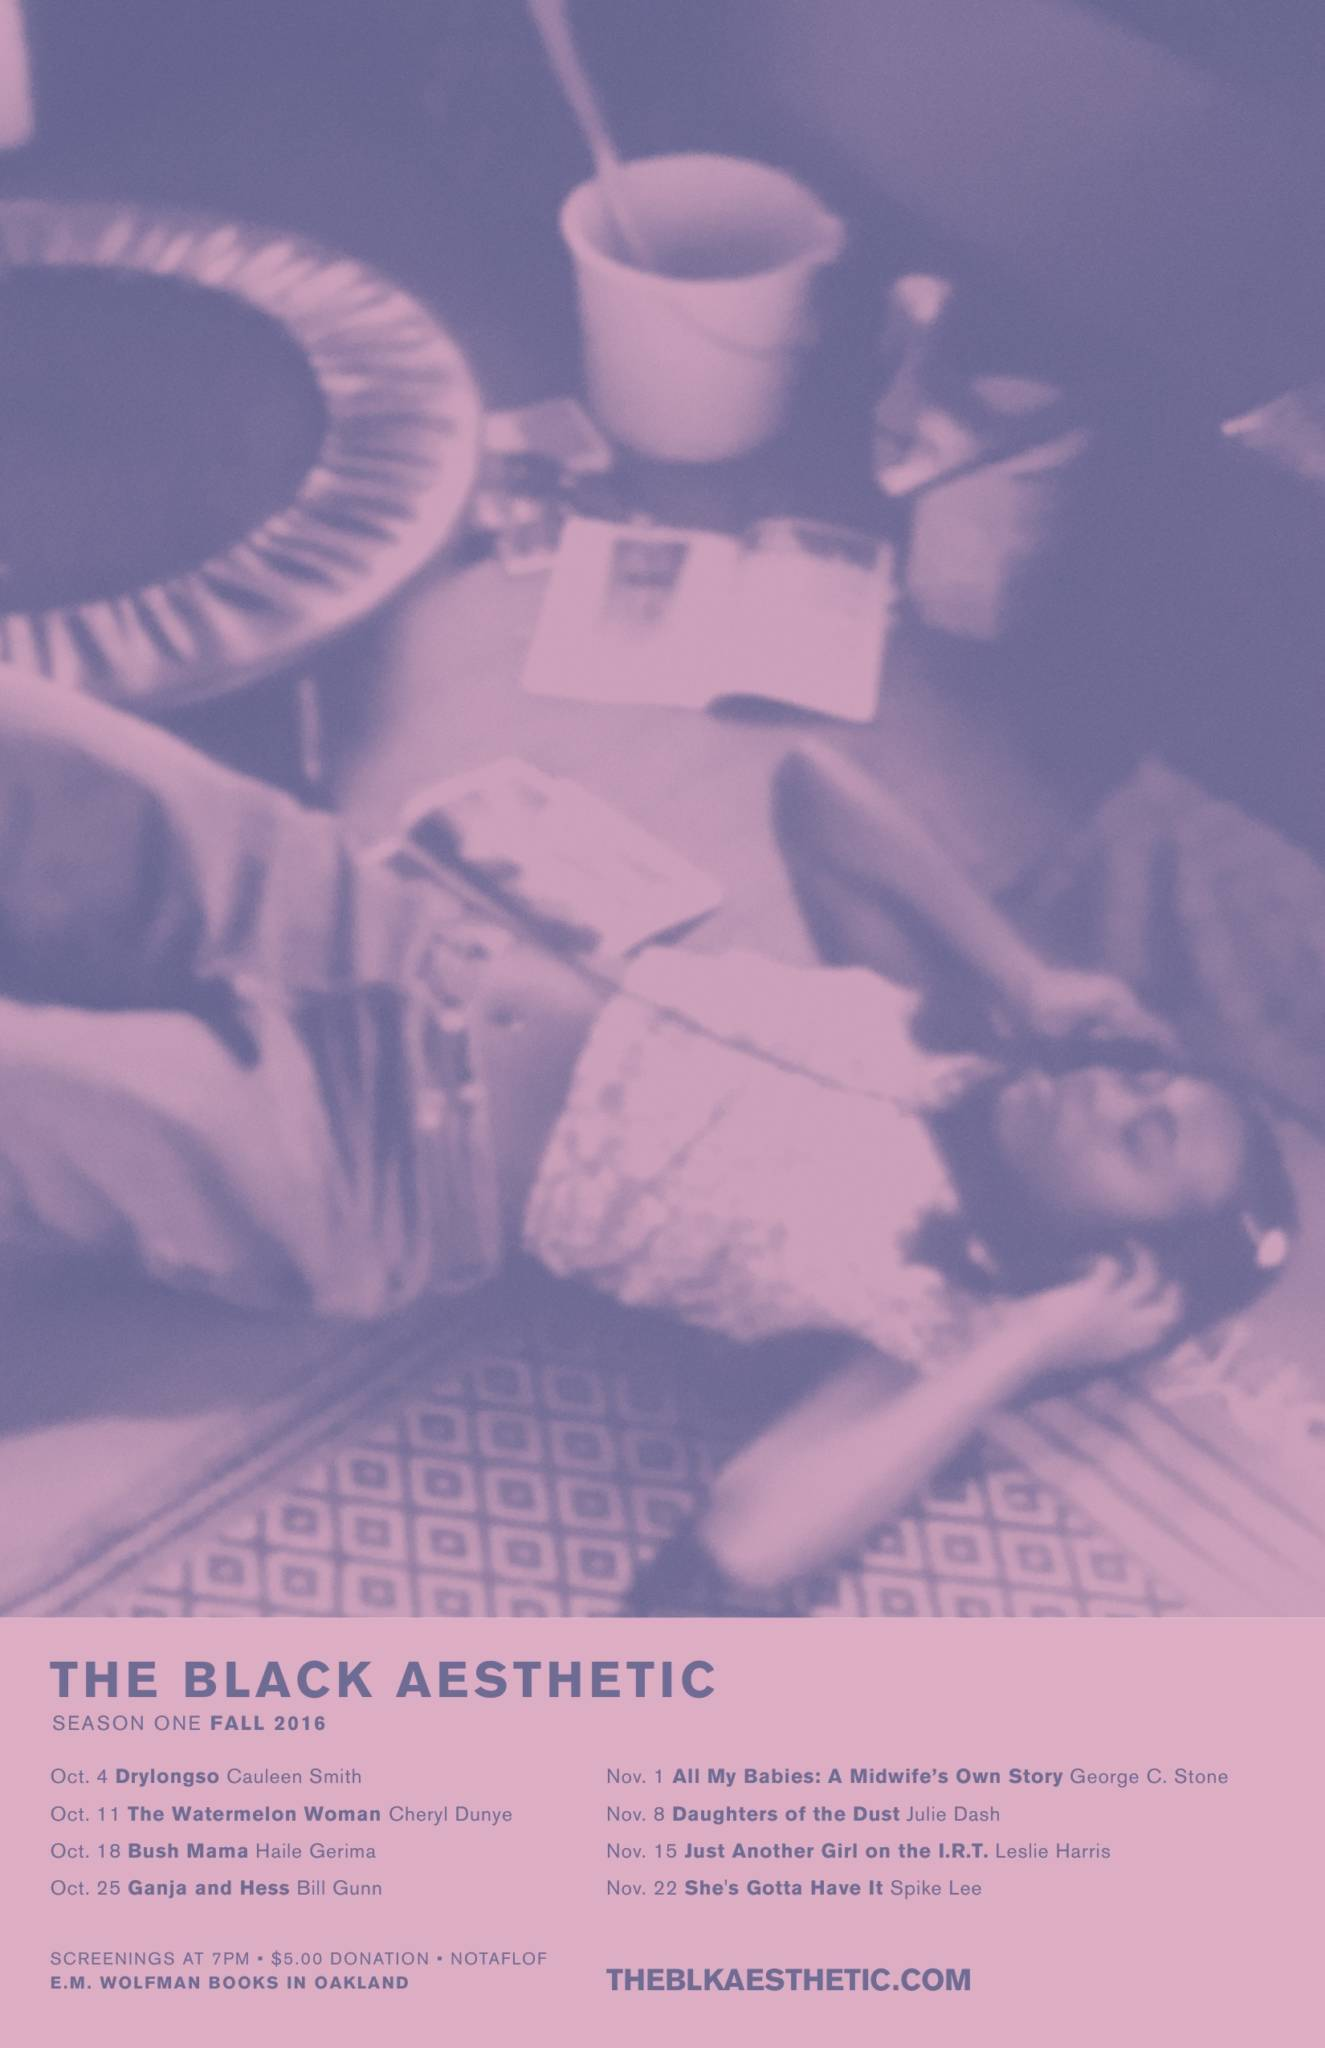 Poster from the first season of The Black Aesthetic film series.